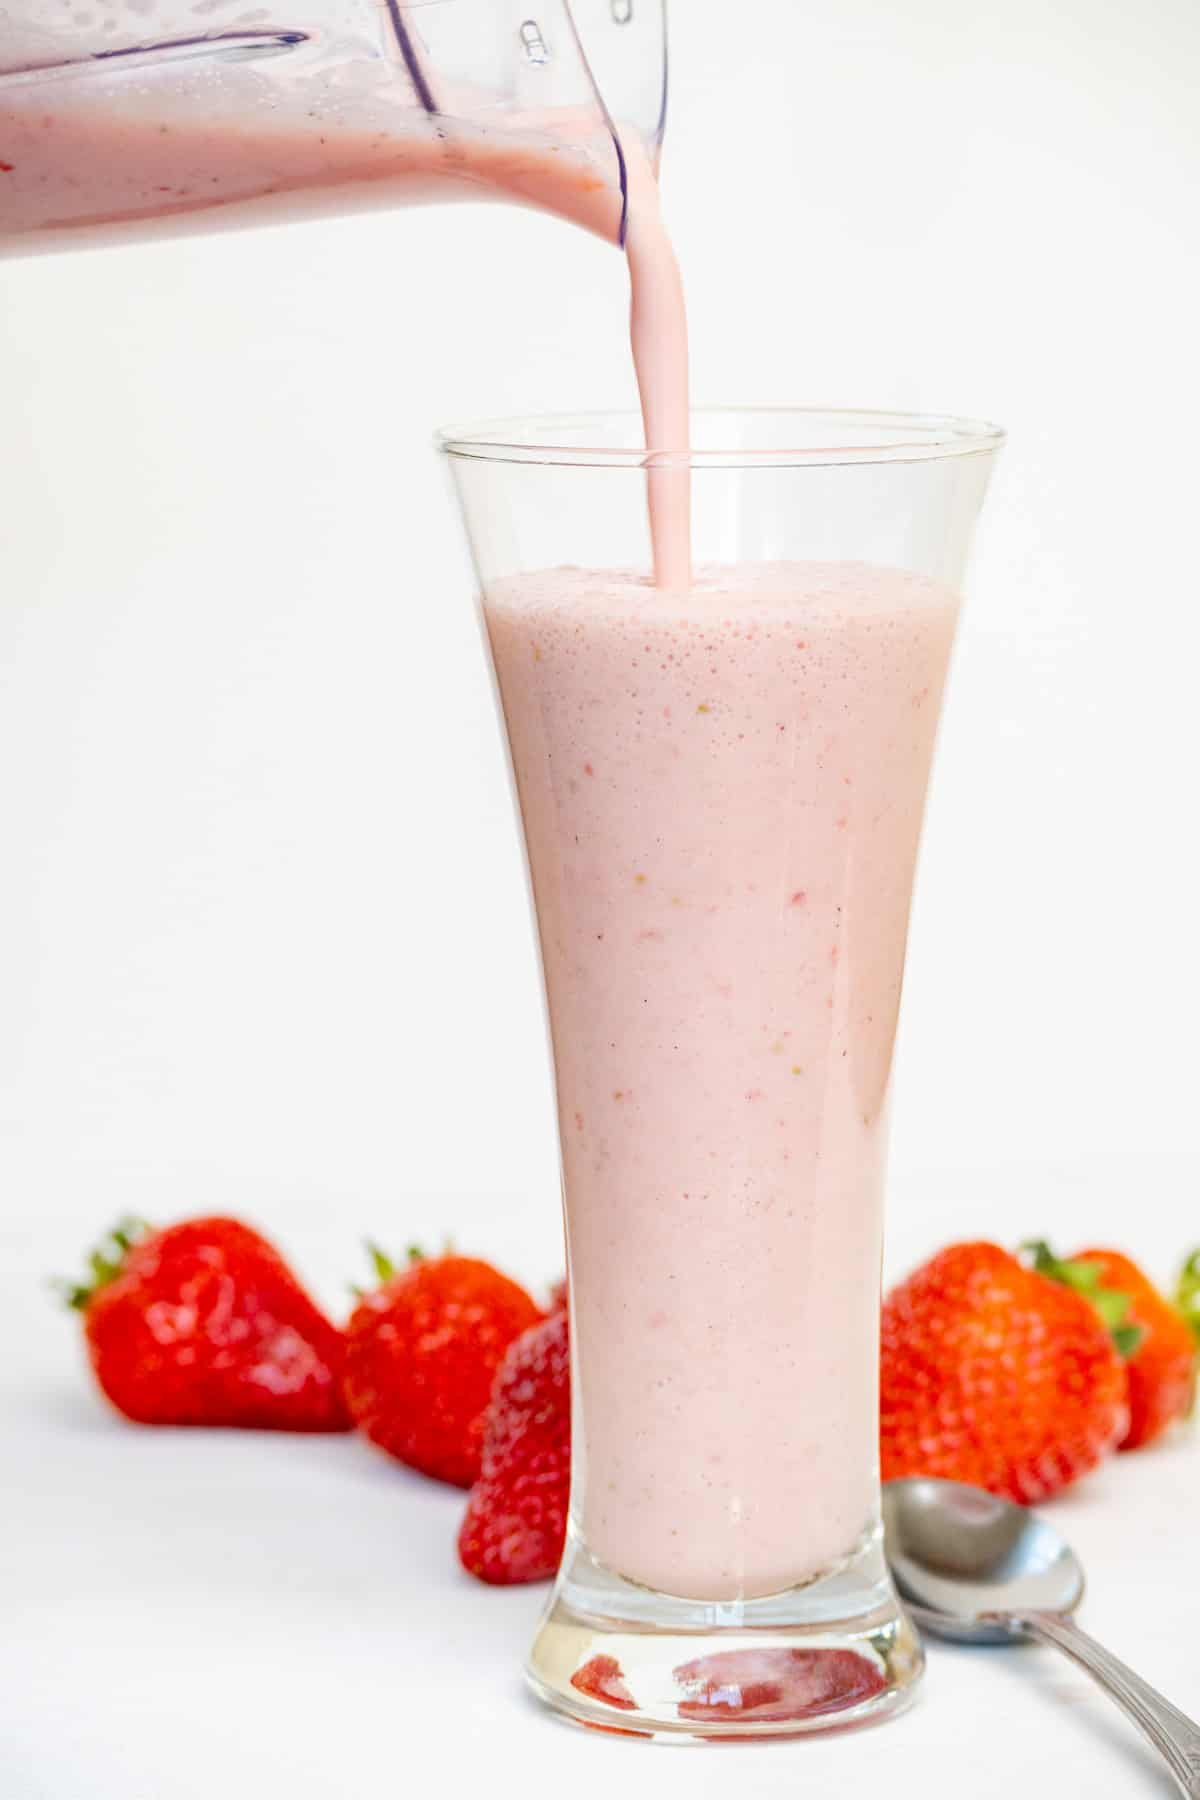 Light pink milkshake is poured into a tall fluted glass.